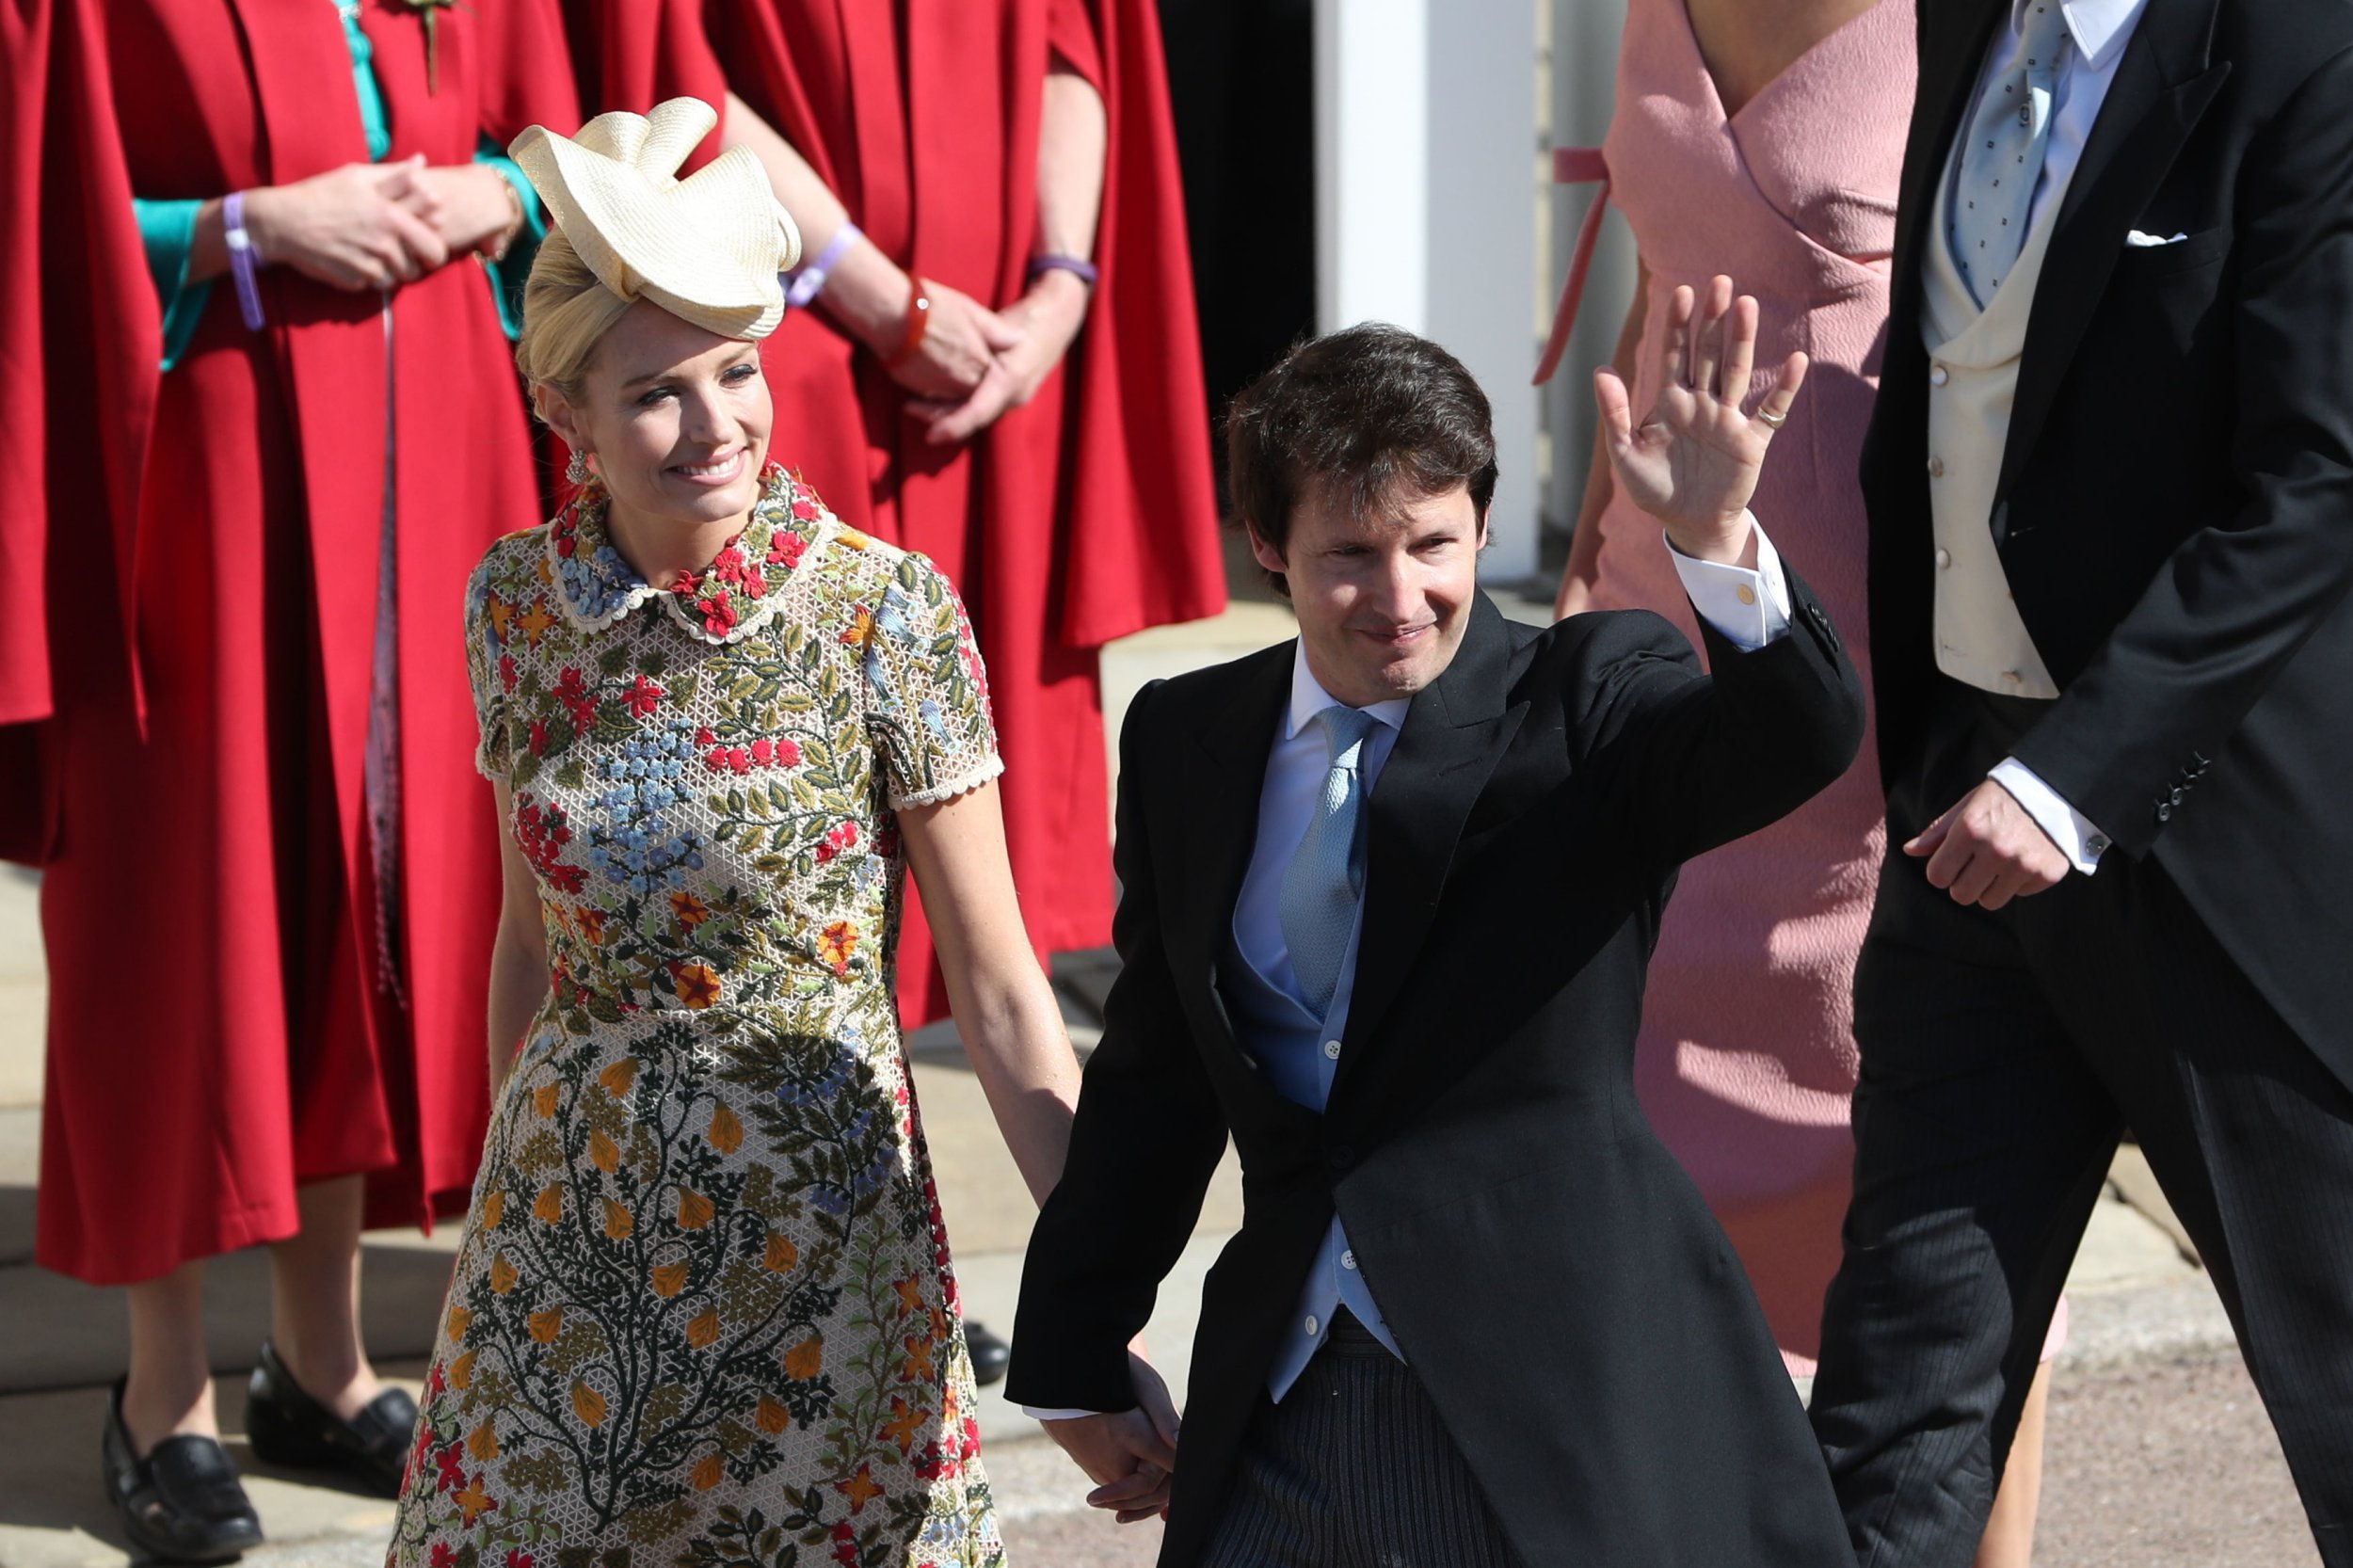 Sofia Wellesley and James Blunt arrive at St George's Chapel at Windsor Castle for the wedding of Megan Markle and Prince Harry. PRESS ASSOCIATION Photo. Picture date: Saturday May 19, 2018. See PA story ROYAL Wedding. Photo credit should read: Andrew Milligan/PA Wire